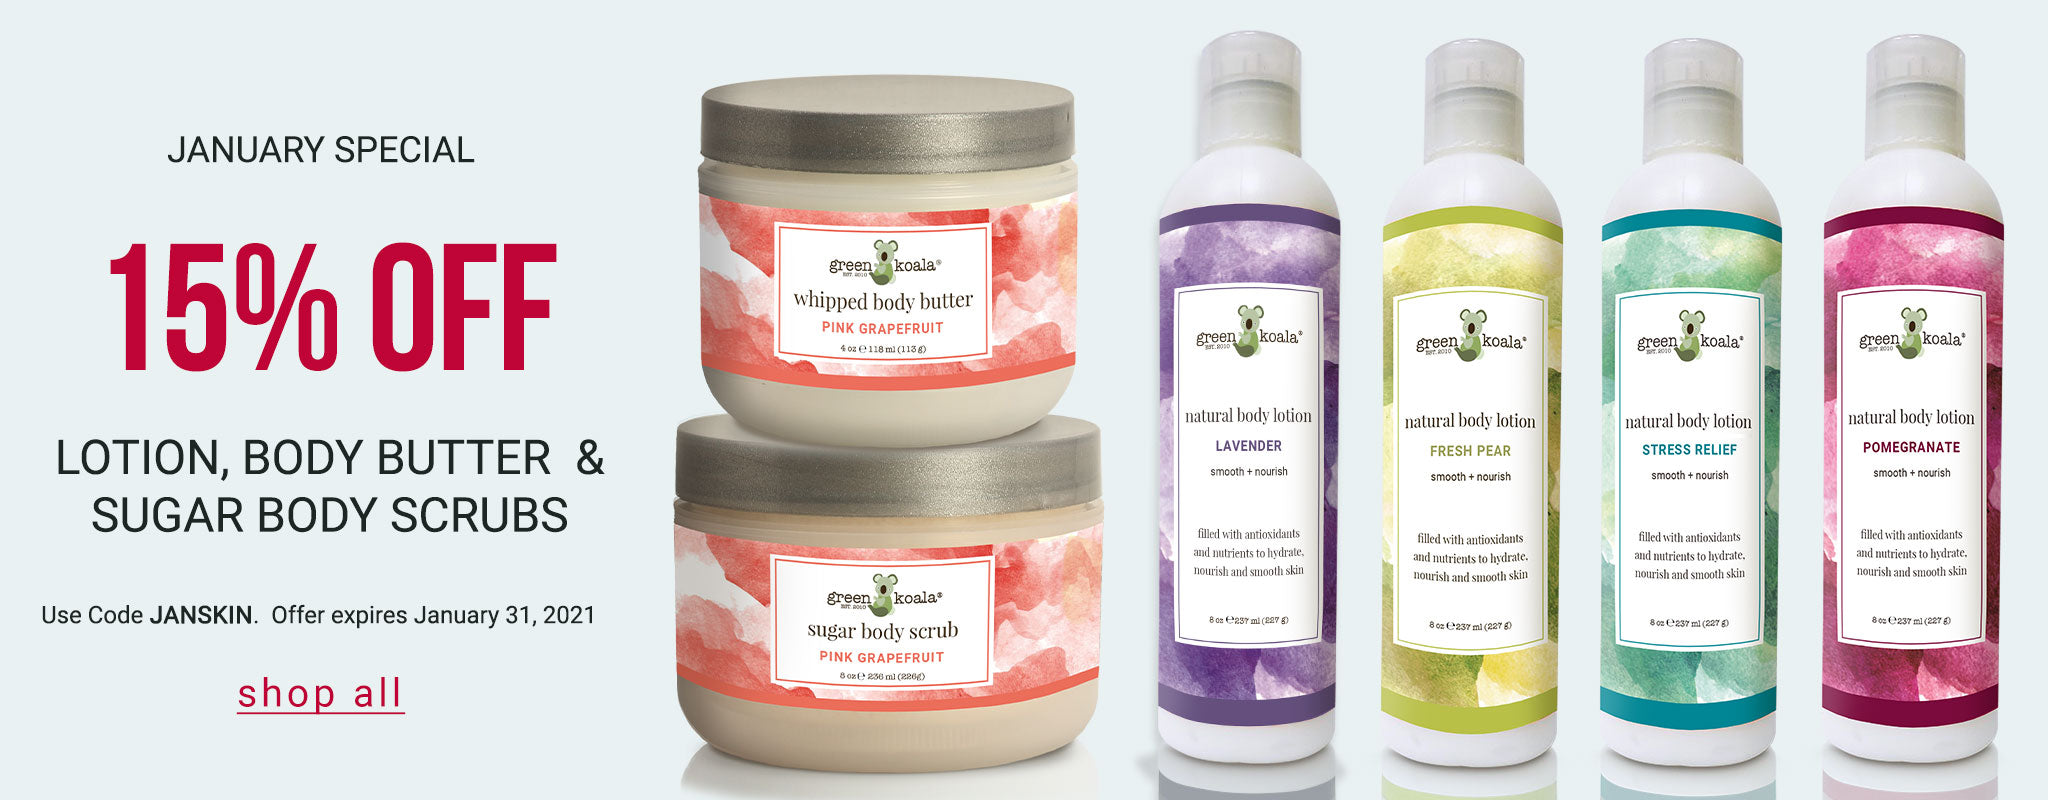 January Special: 15% off body butter, lotion, and sugar body scrubs